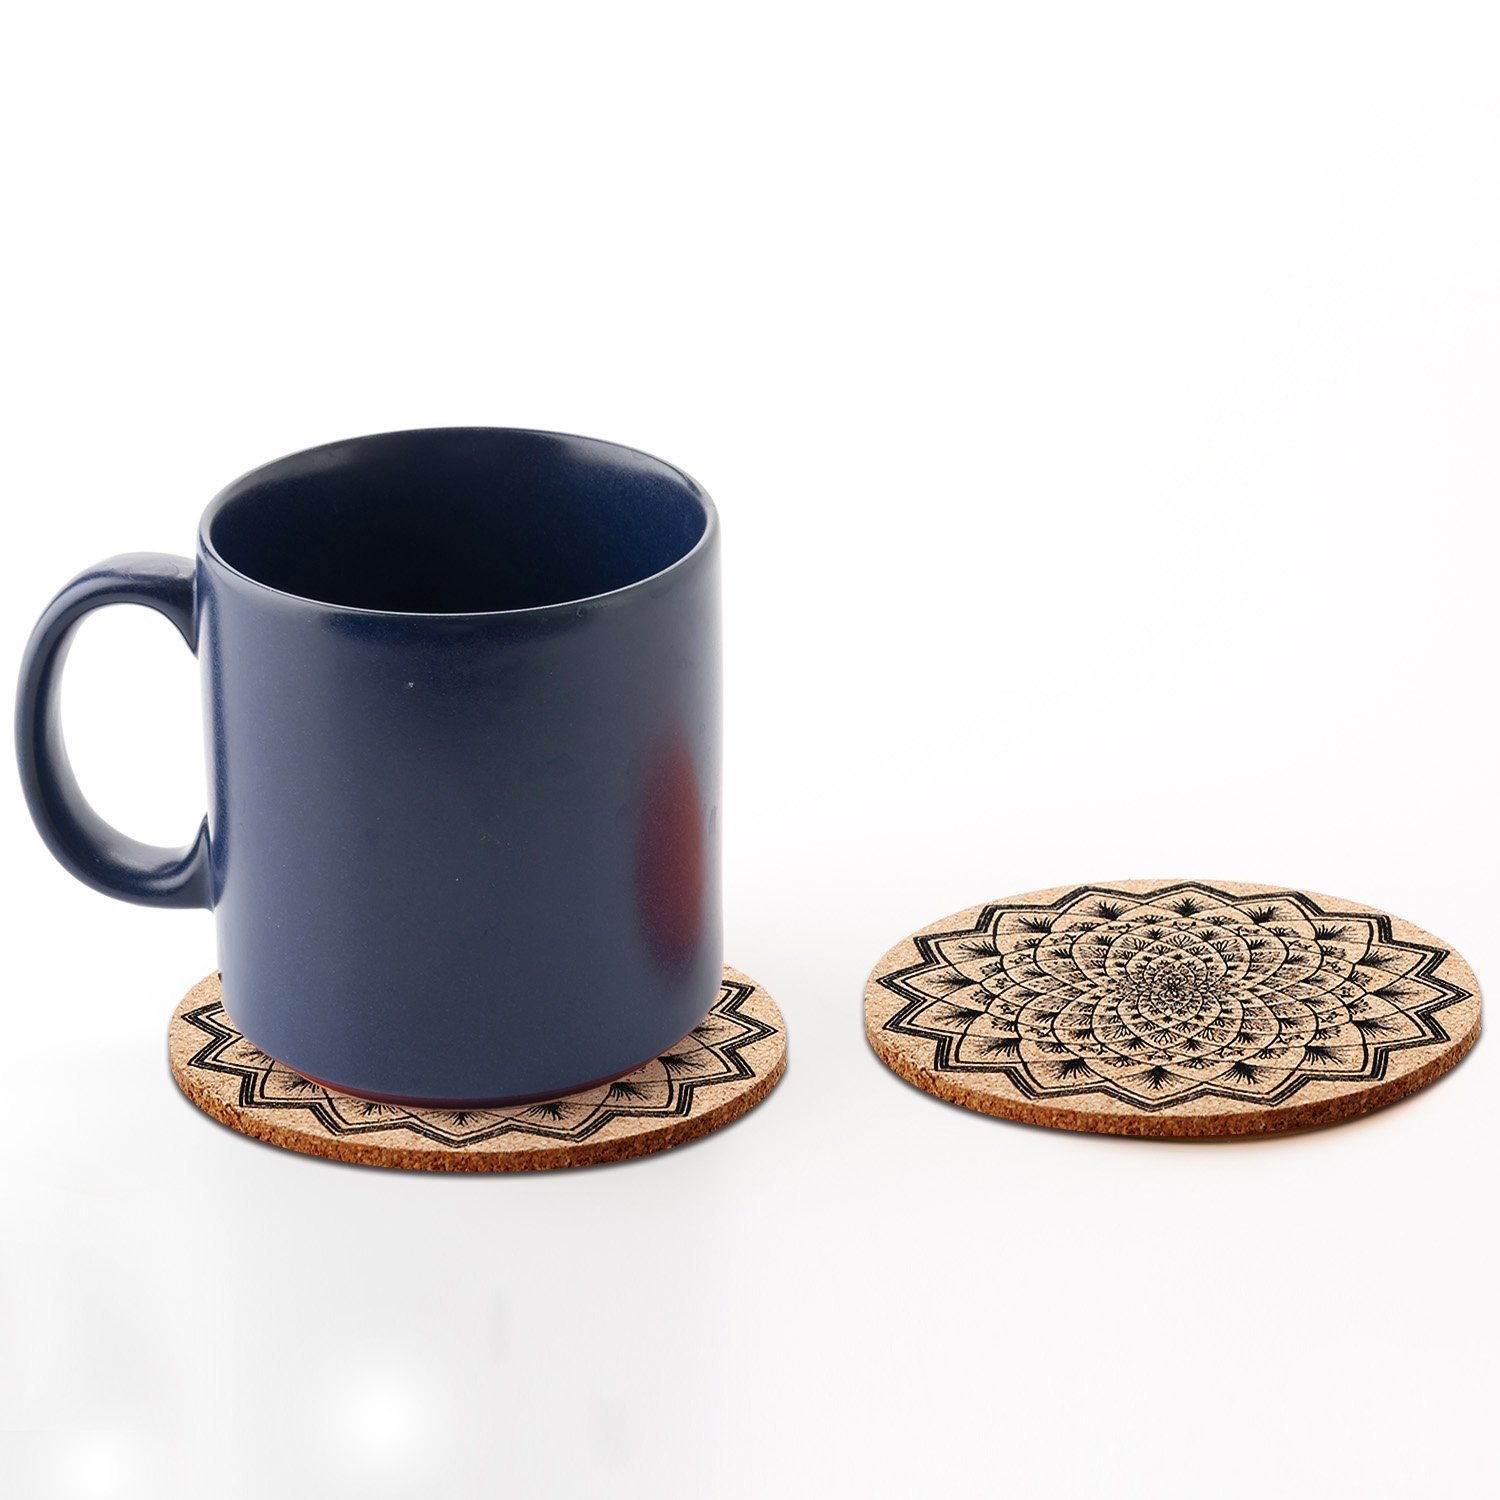 Tatuo 12 Pieces Cork Coasters for Drinks Absorbent Reusable Cup Mat Drink Coaster for Home Restaurant Office and Bar, 4 Inches by Tatuo (Image #7)